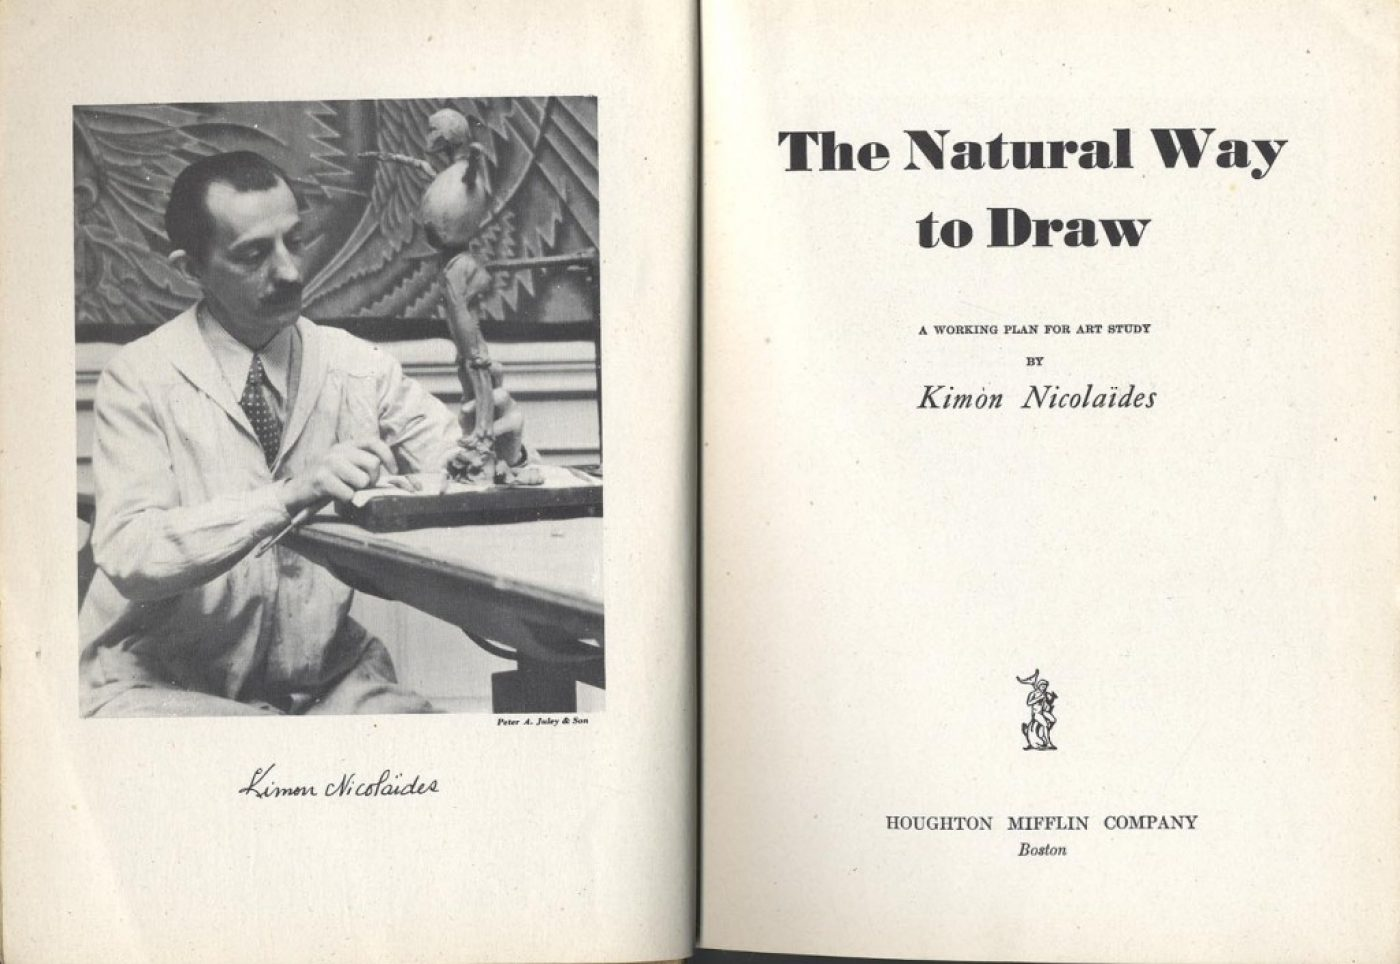 The Natural Way to Draw by Kimon Nickolaides